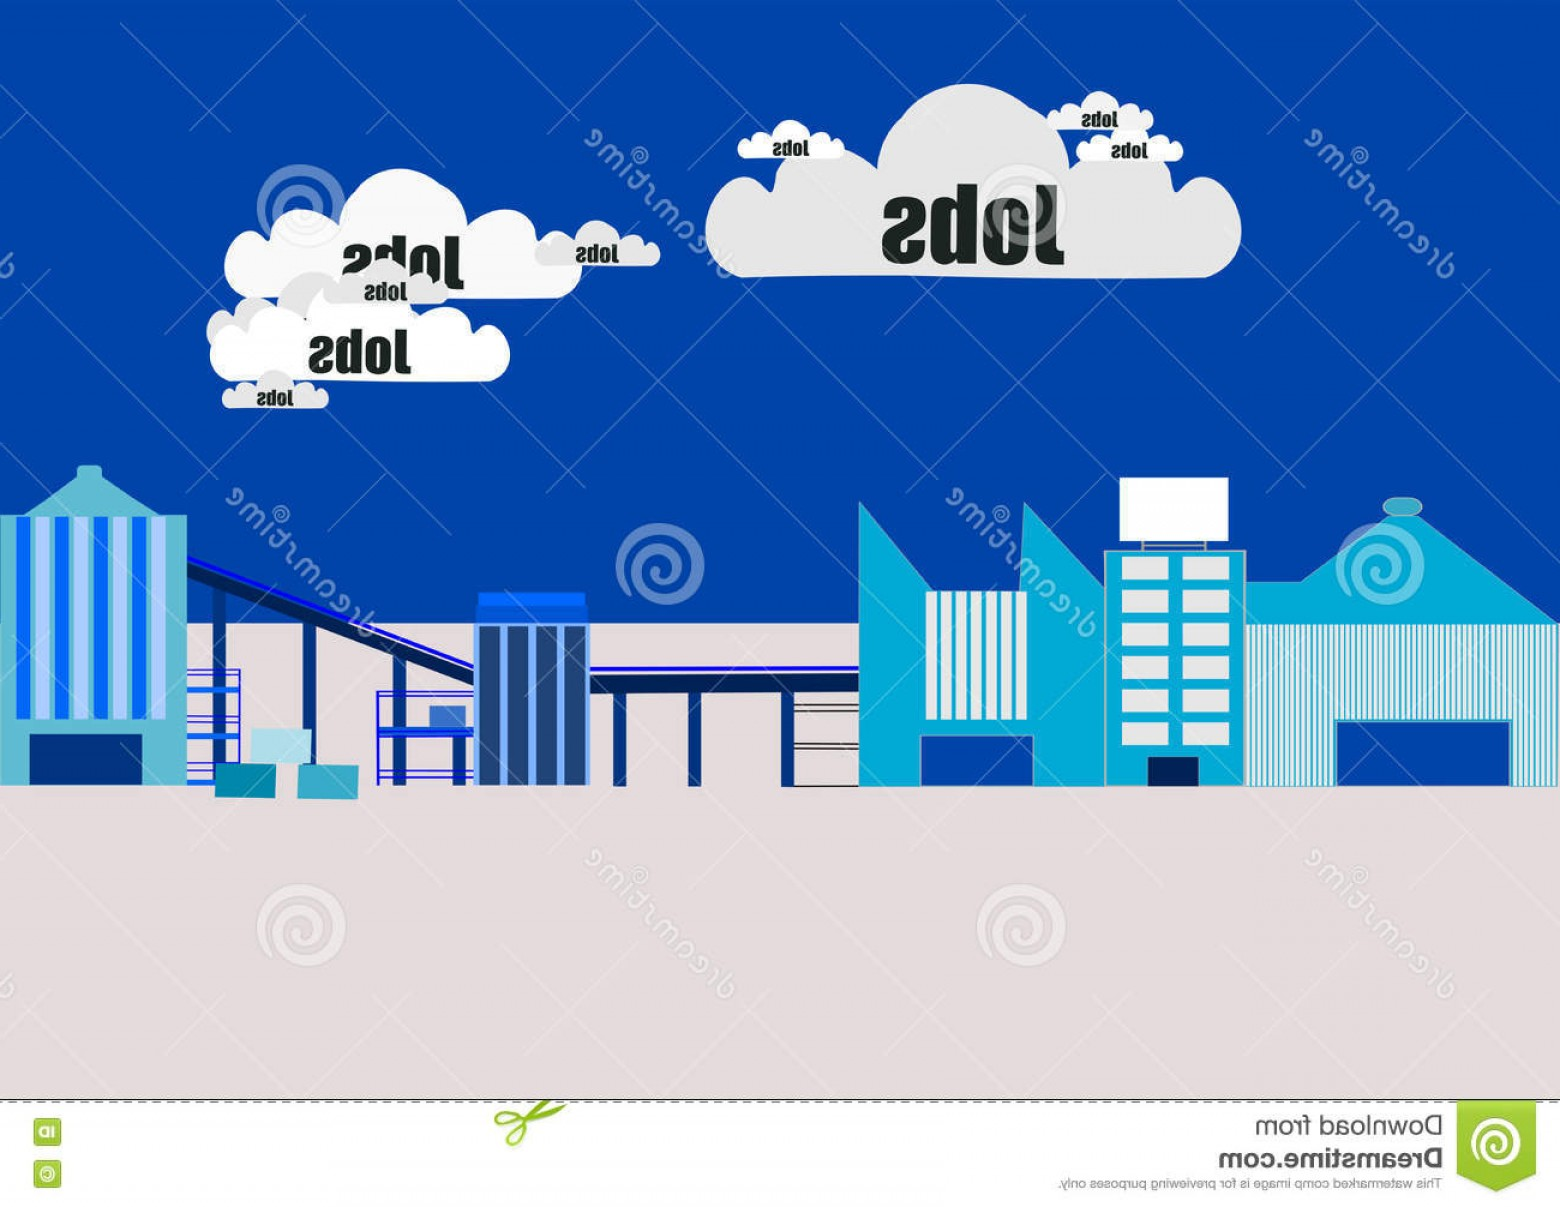 Vector Job Opportunities: Stock Illustration Jobs Cloud Investment New Industrial Manufacturing Plants Stimulate Growth Create New Employment Opportunities Image